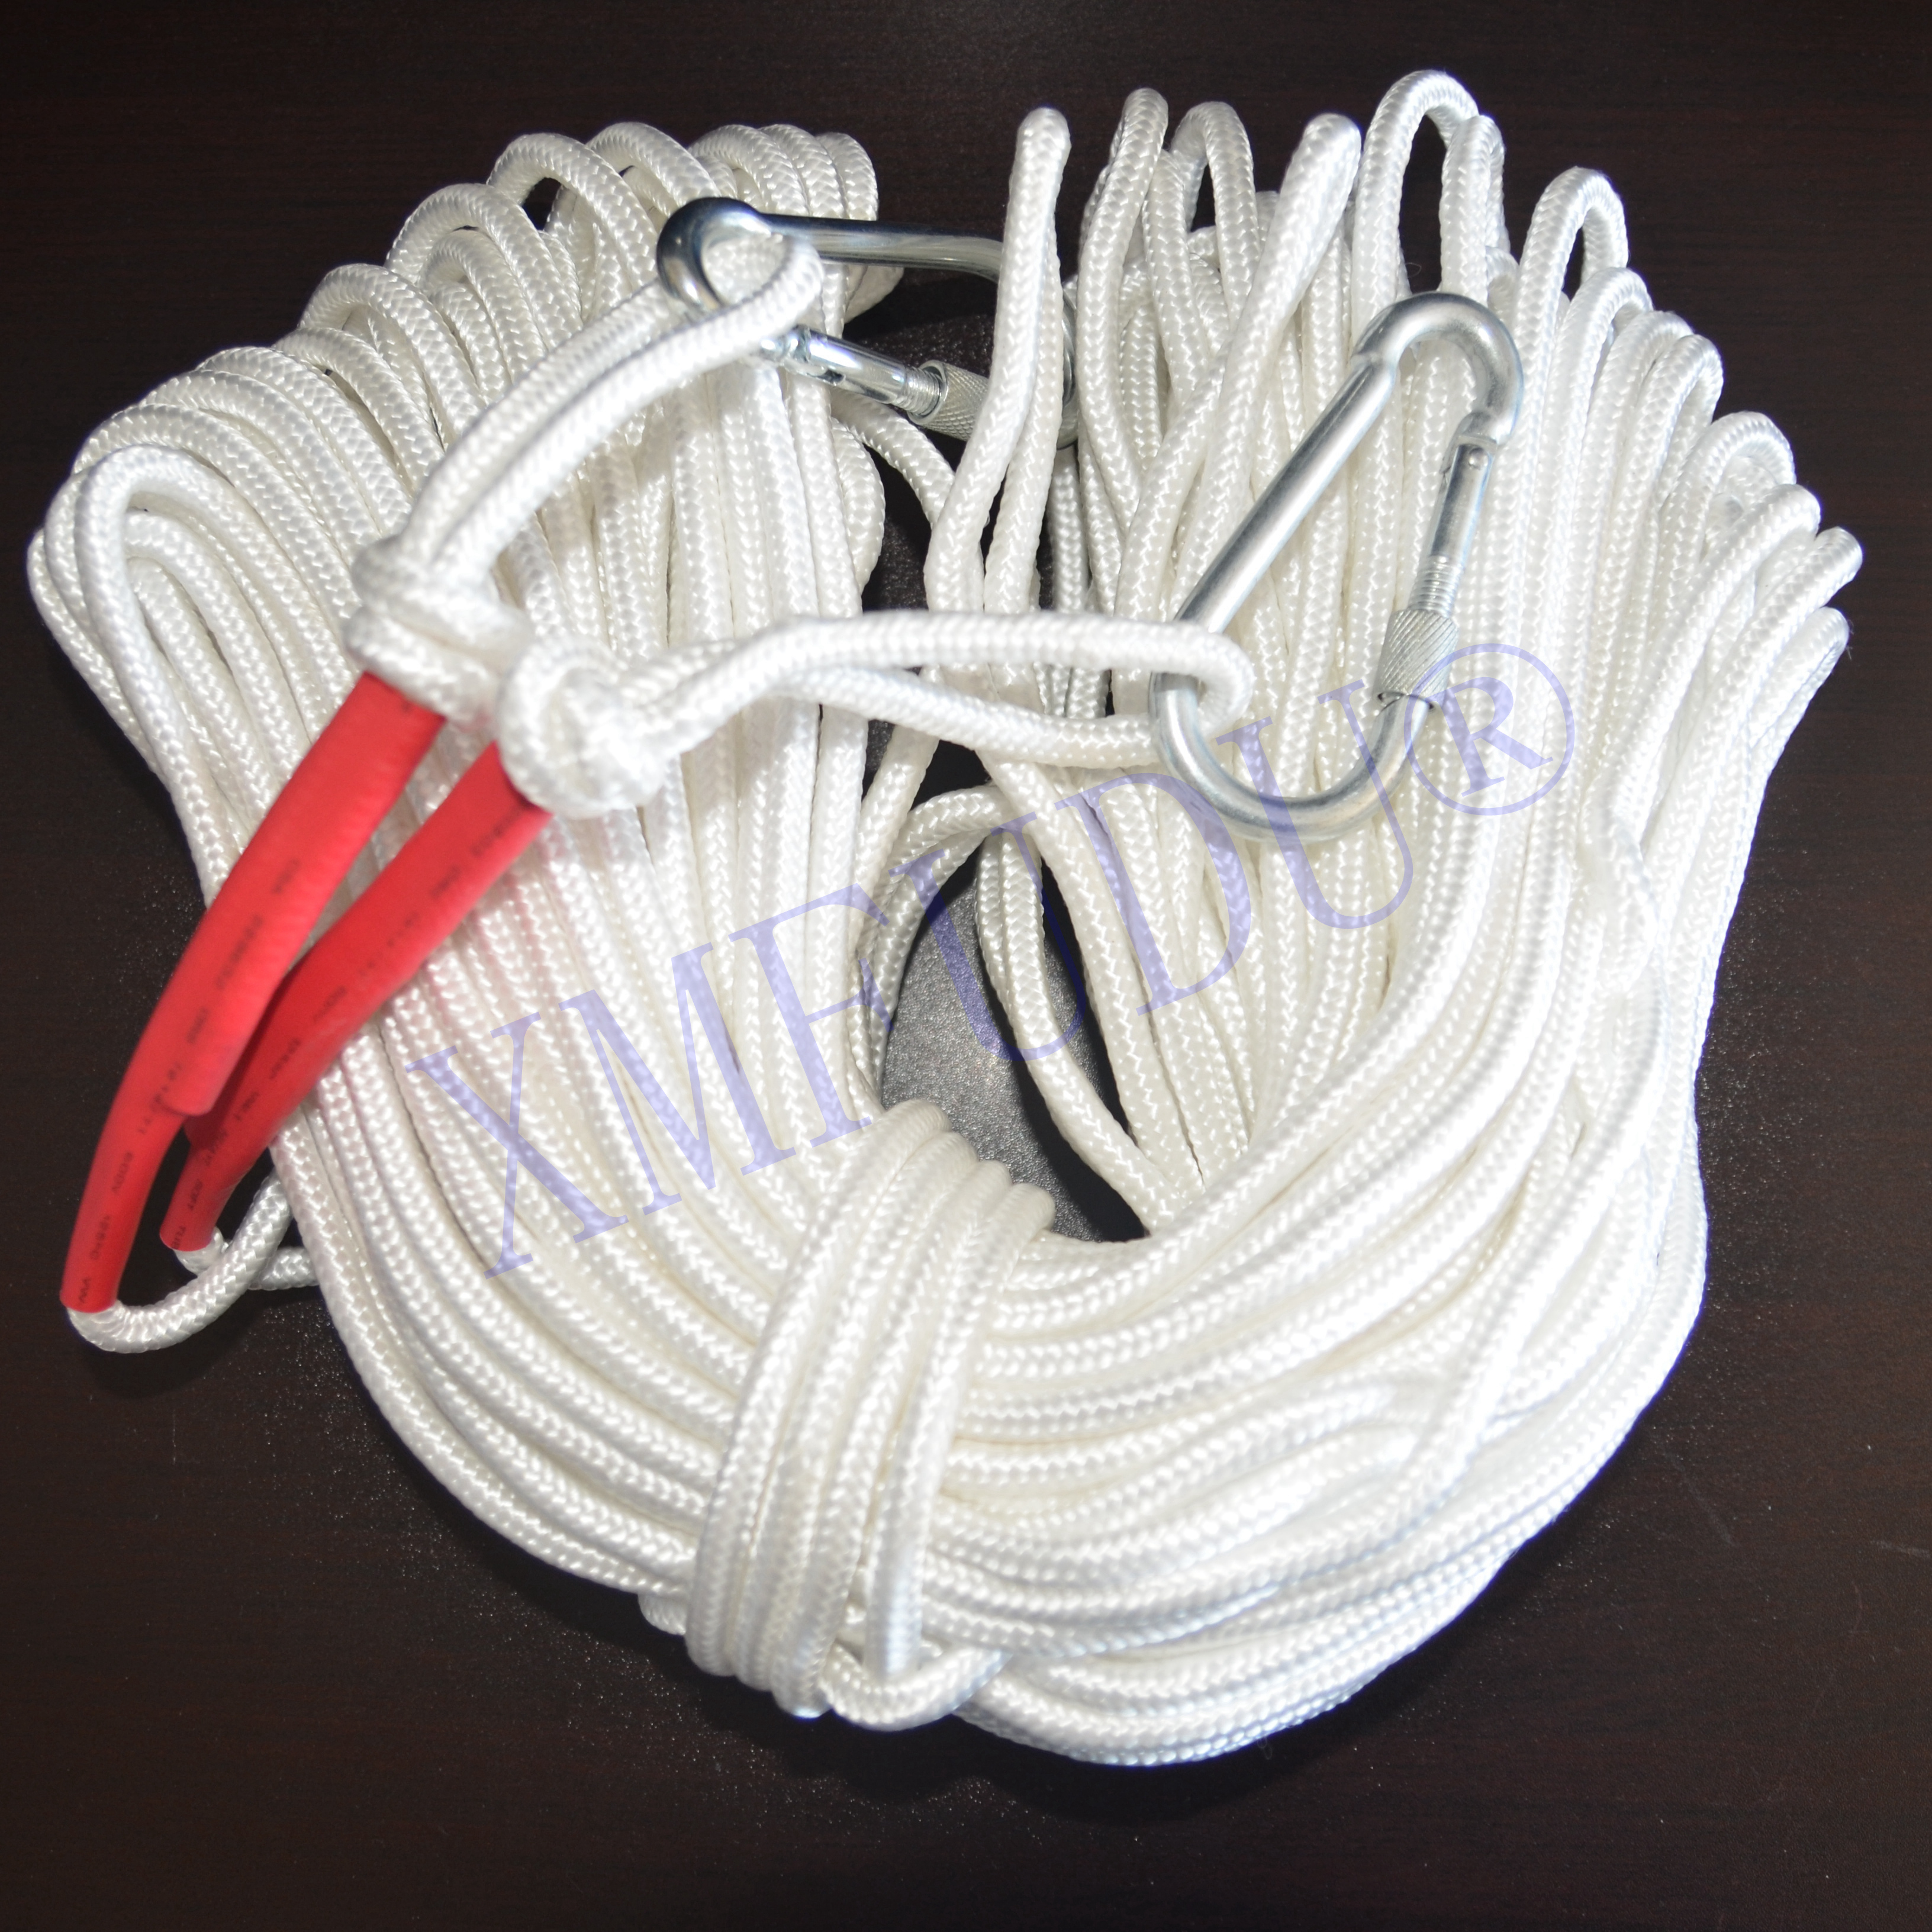 50m High Strength White Dia 6mm,8mm Braided Nylon Anchor Rope/ Outdoor Rock Climbing Rope Line For Kayak/canoes/boats